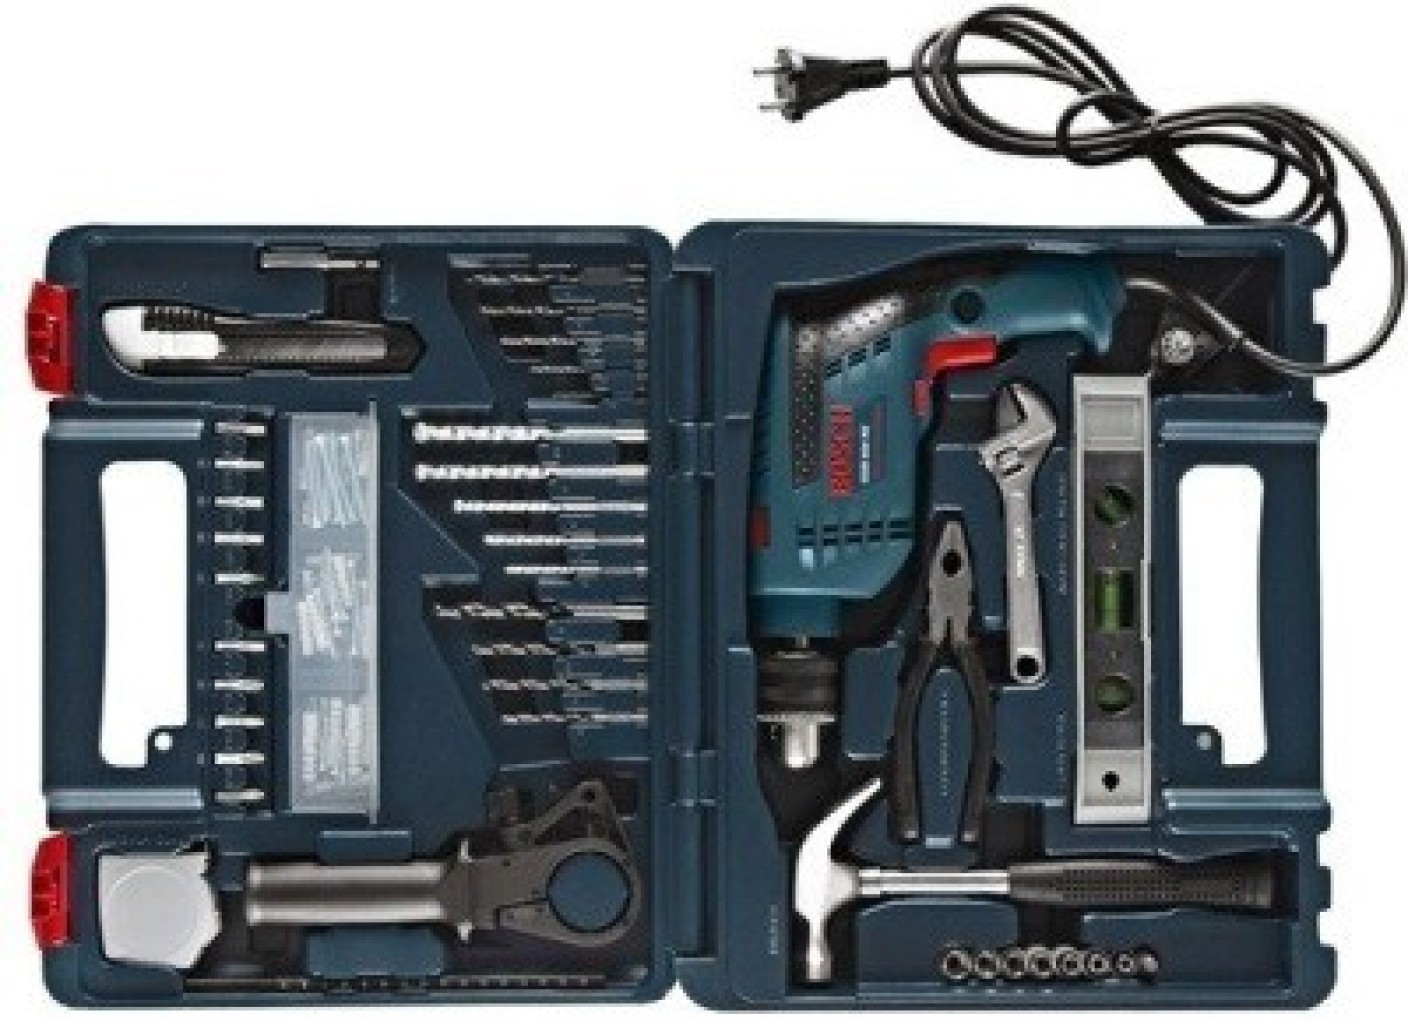 bosch gsb 13 re drill kit power tool kit price in india. Black Bedroom Furniture Sets. Home Design Ideas